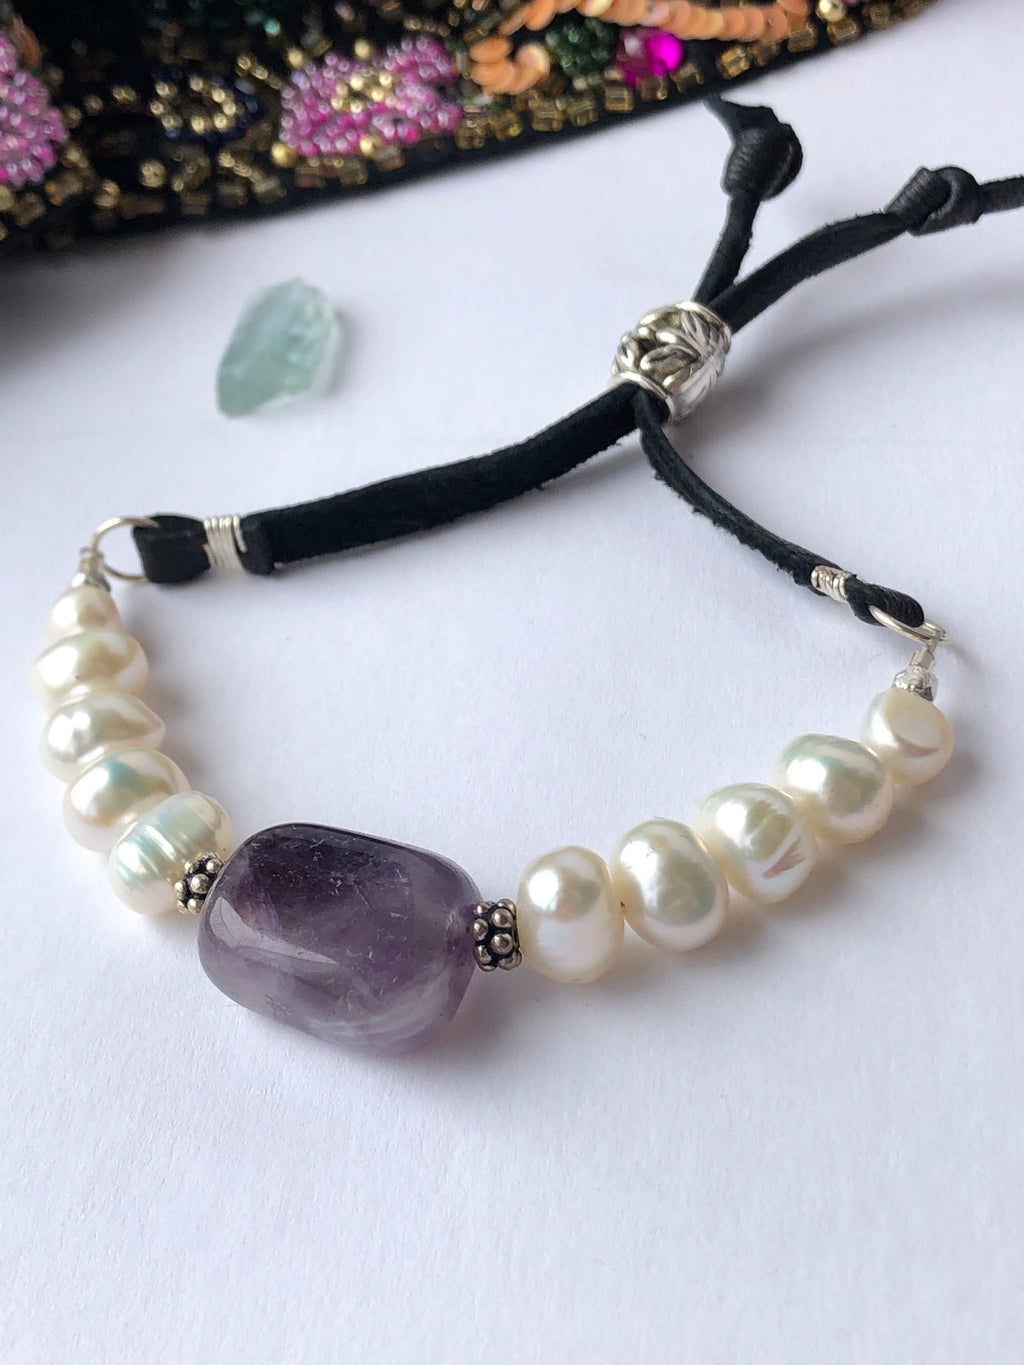 Amethyst Pearl Bracelet / Freshwater Pearls / Black Deerskin Leather Adjustable / Sterling Silver / Amethyst Bracelet